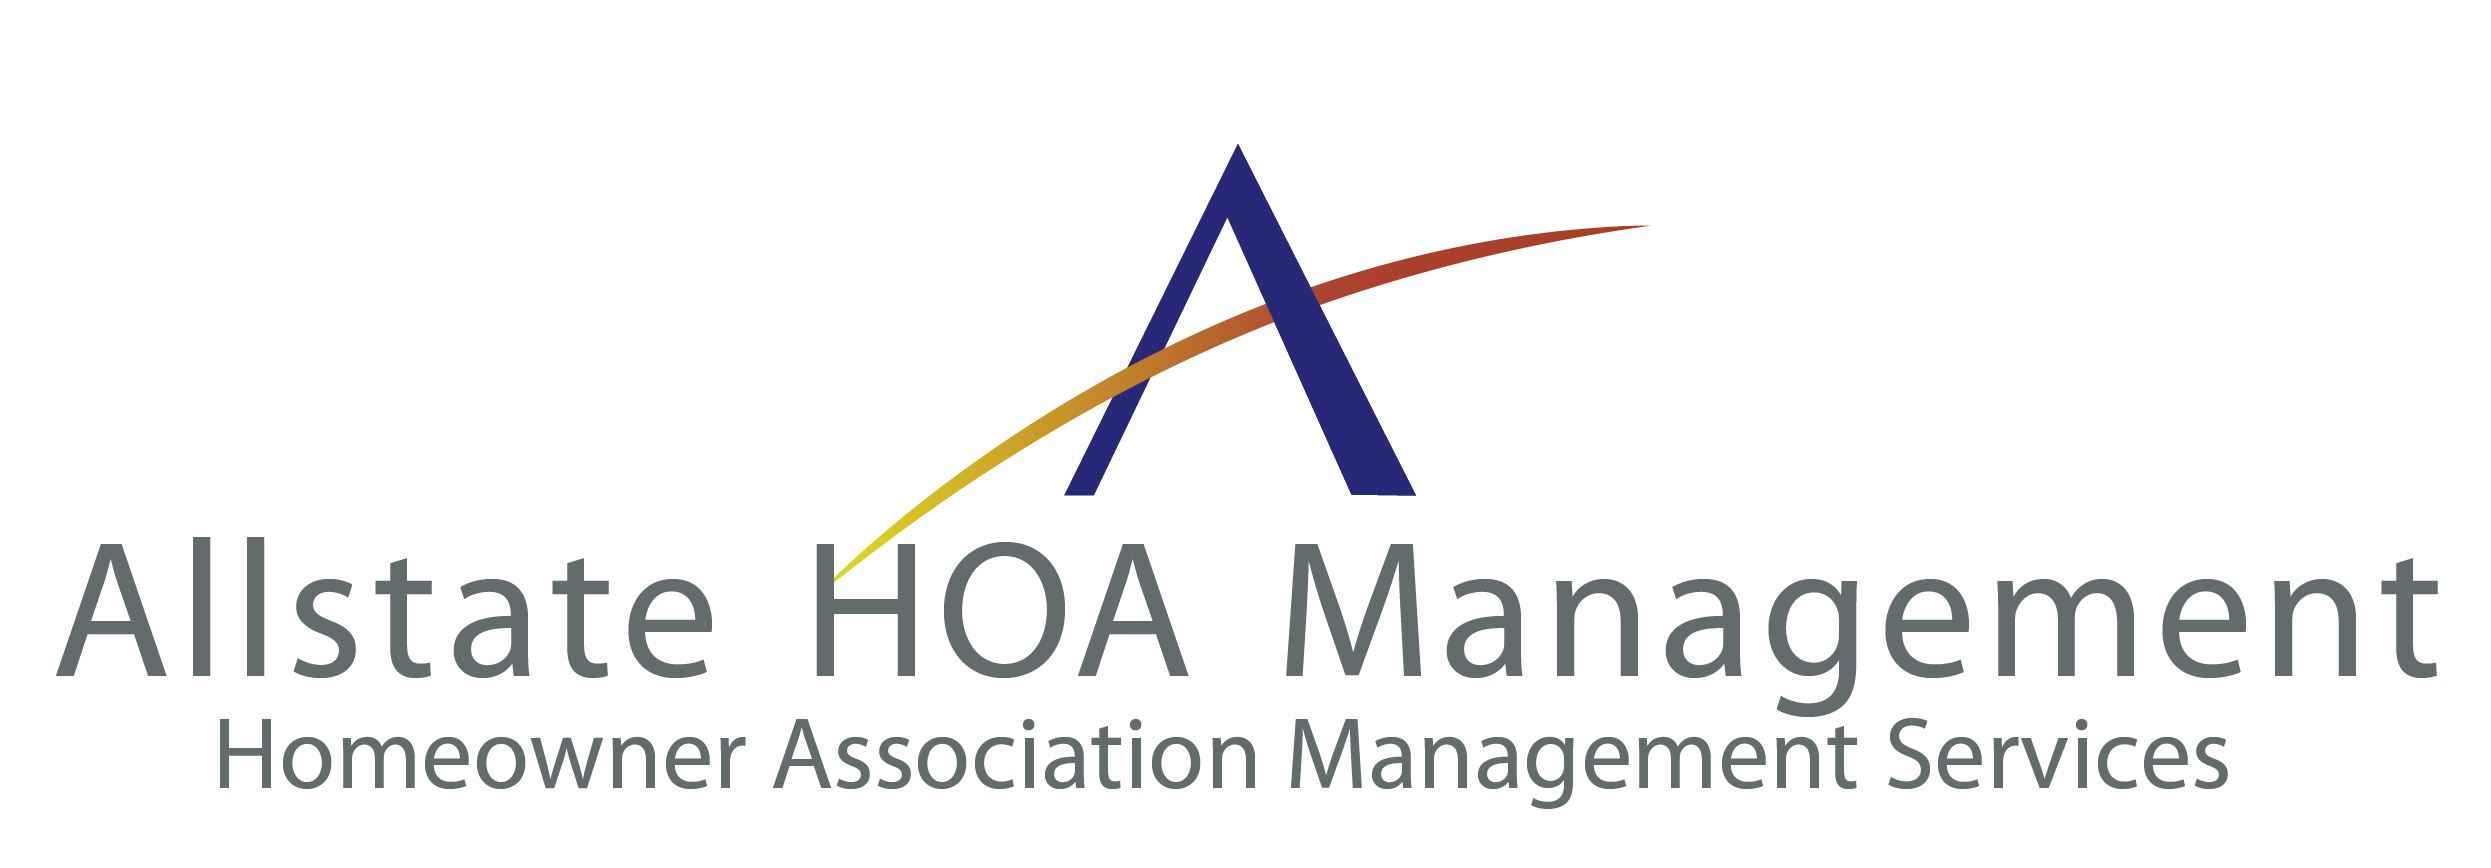 Hoa Property Management Certified Managing Agent